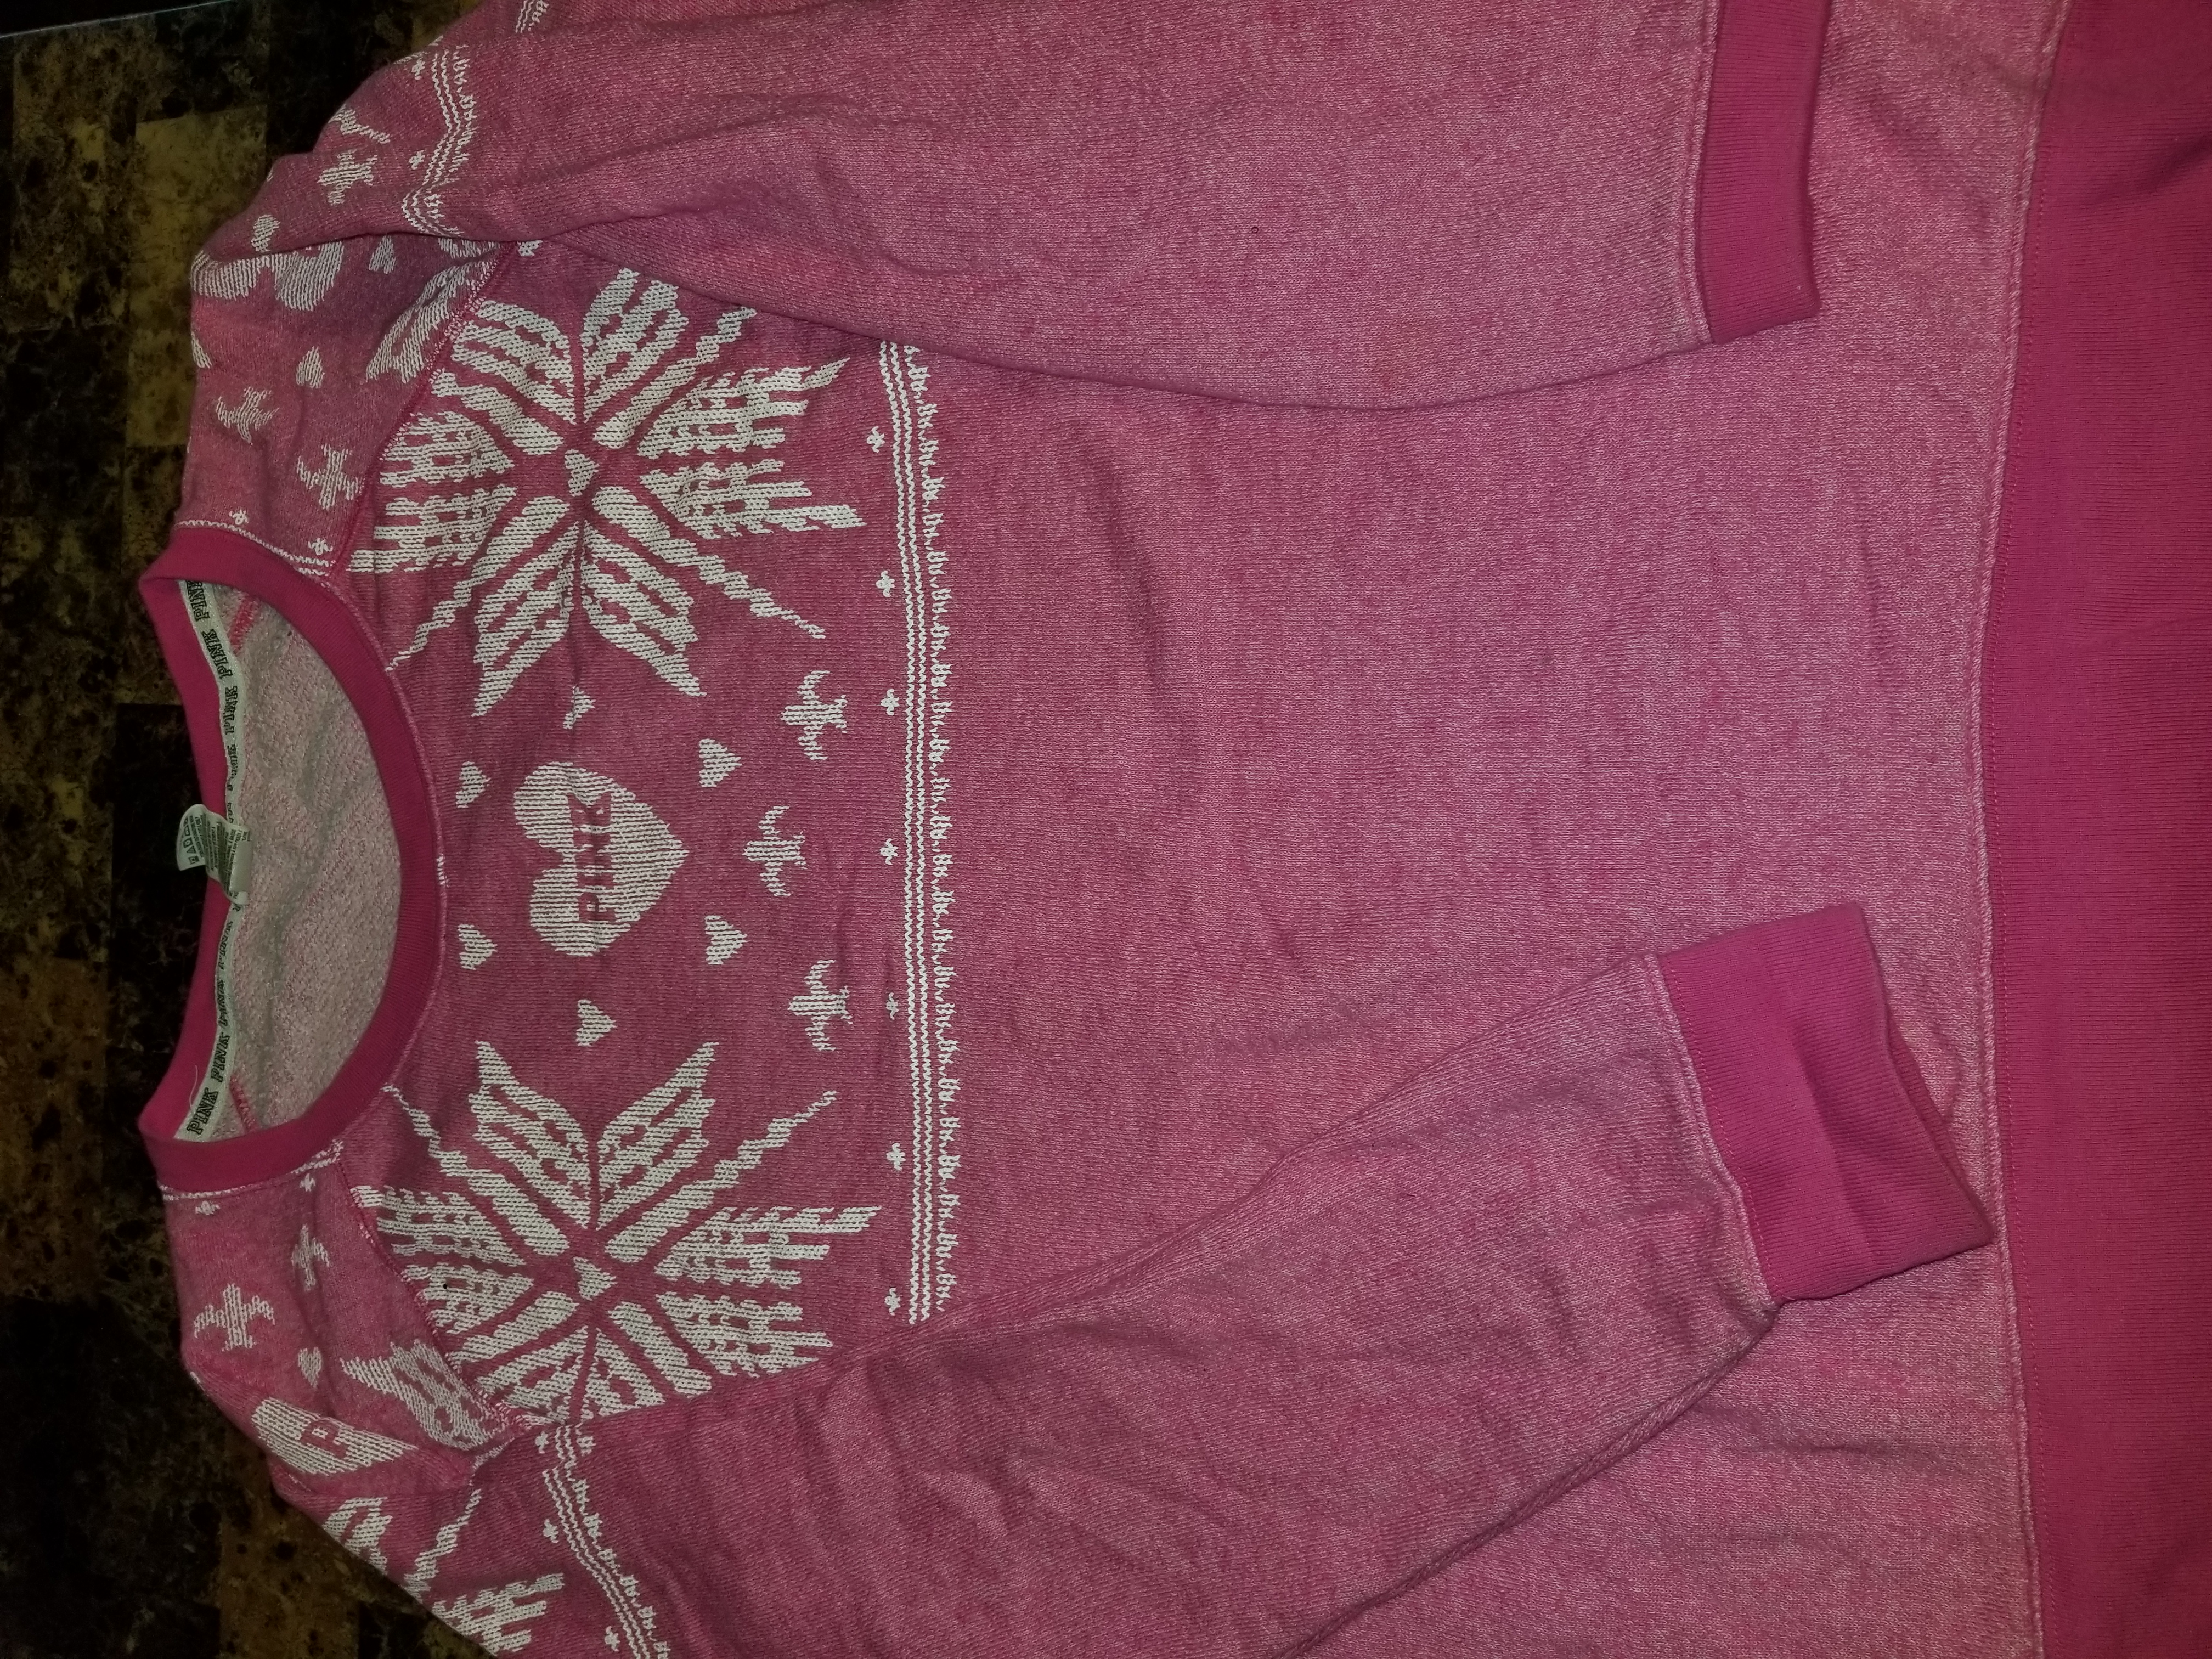 Victoria's Secret PINK Sweater L